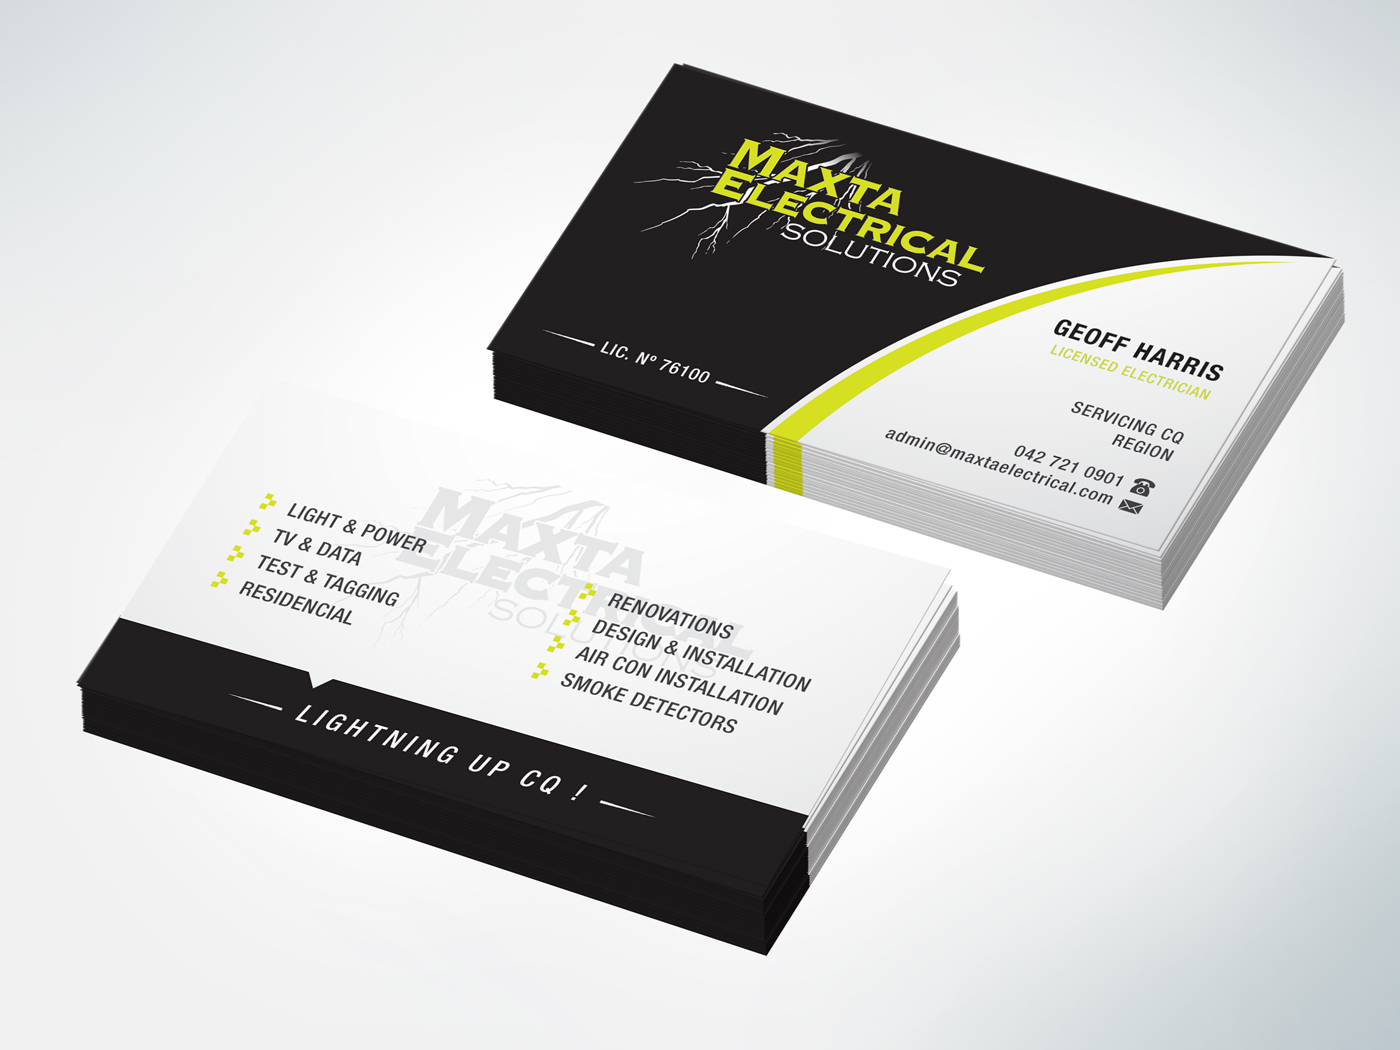 Business card design for maxta electrical solutions by edgar1van business card design by edgar1van for business card design project for electrical company design magicingreecefo Images